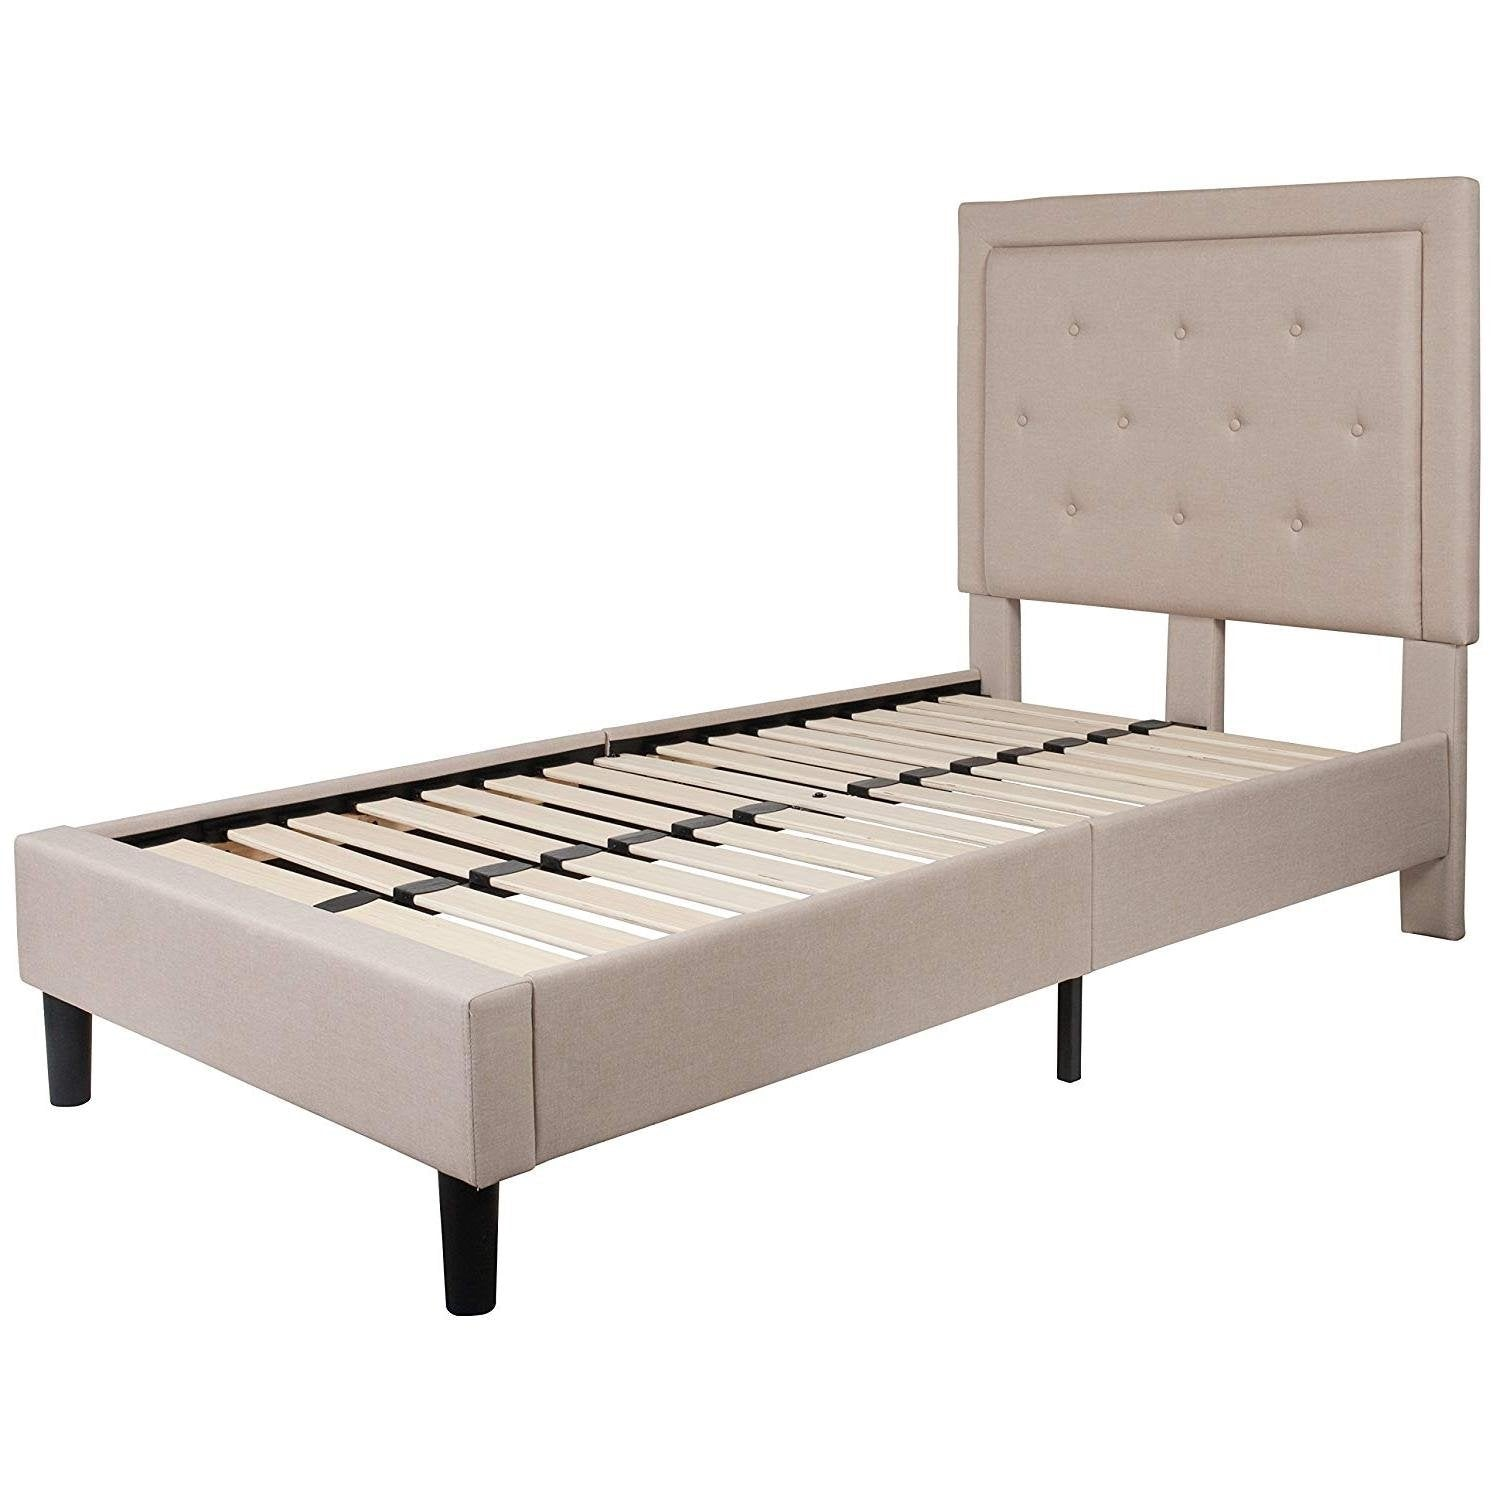 Twin Beige Fabric Upholstered Platform Bed with Button Tufted Headboard